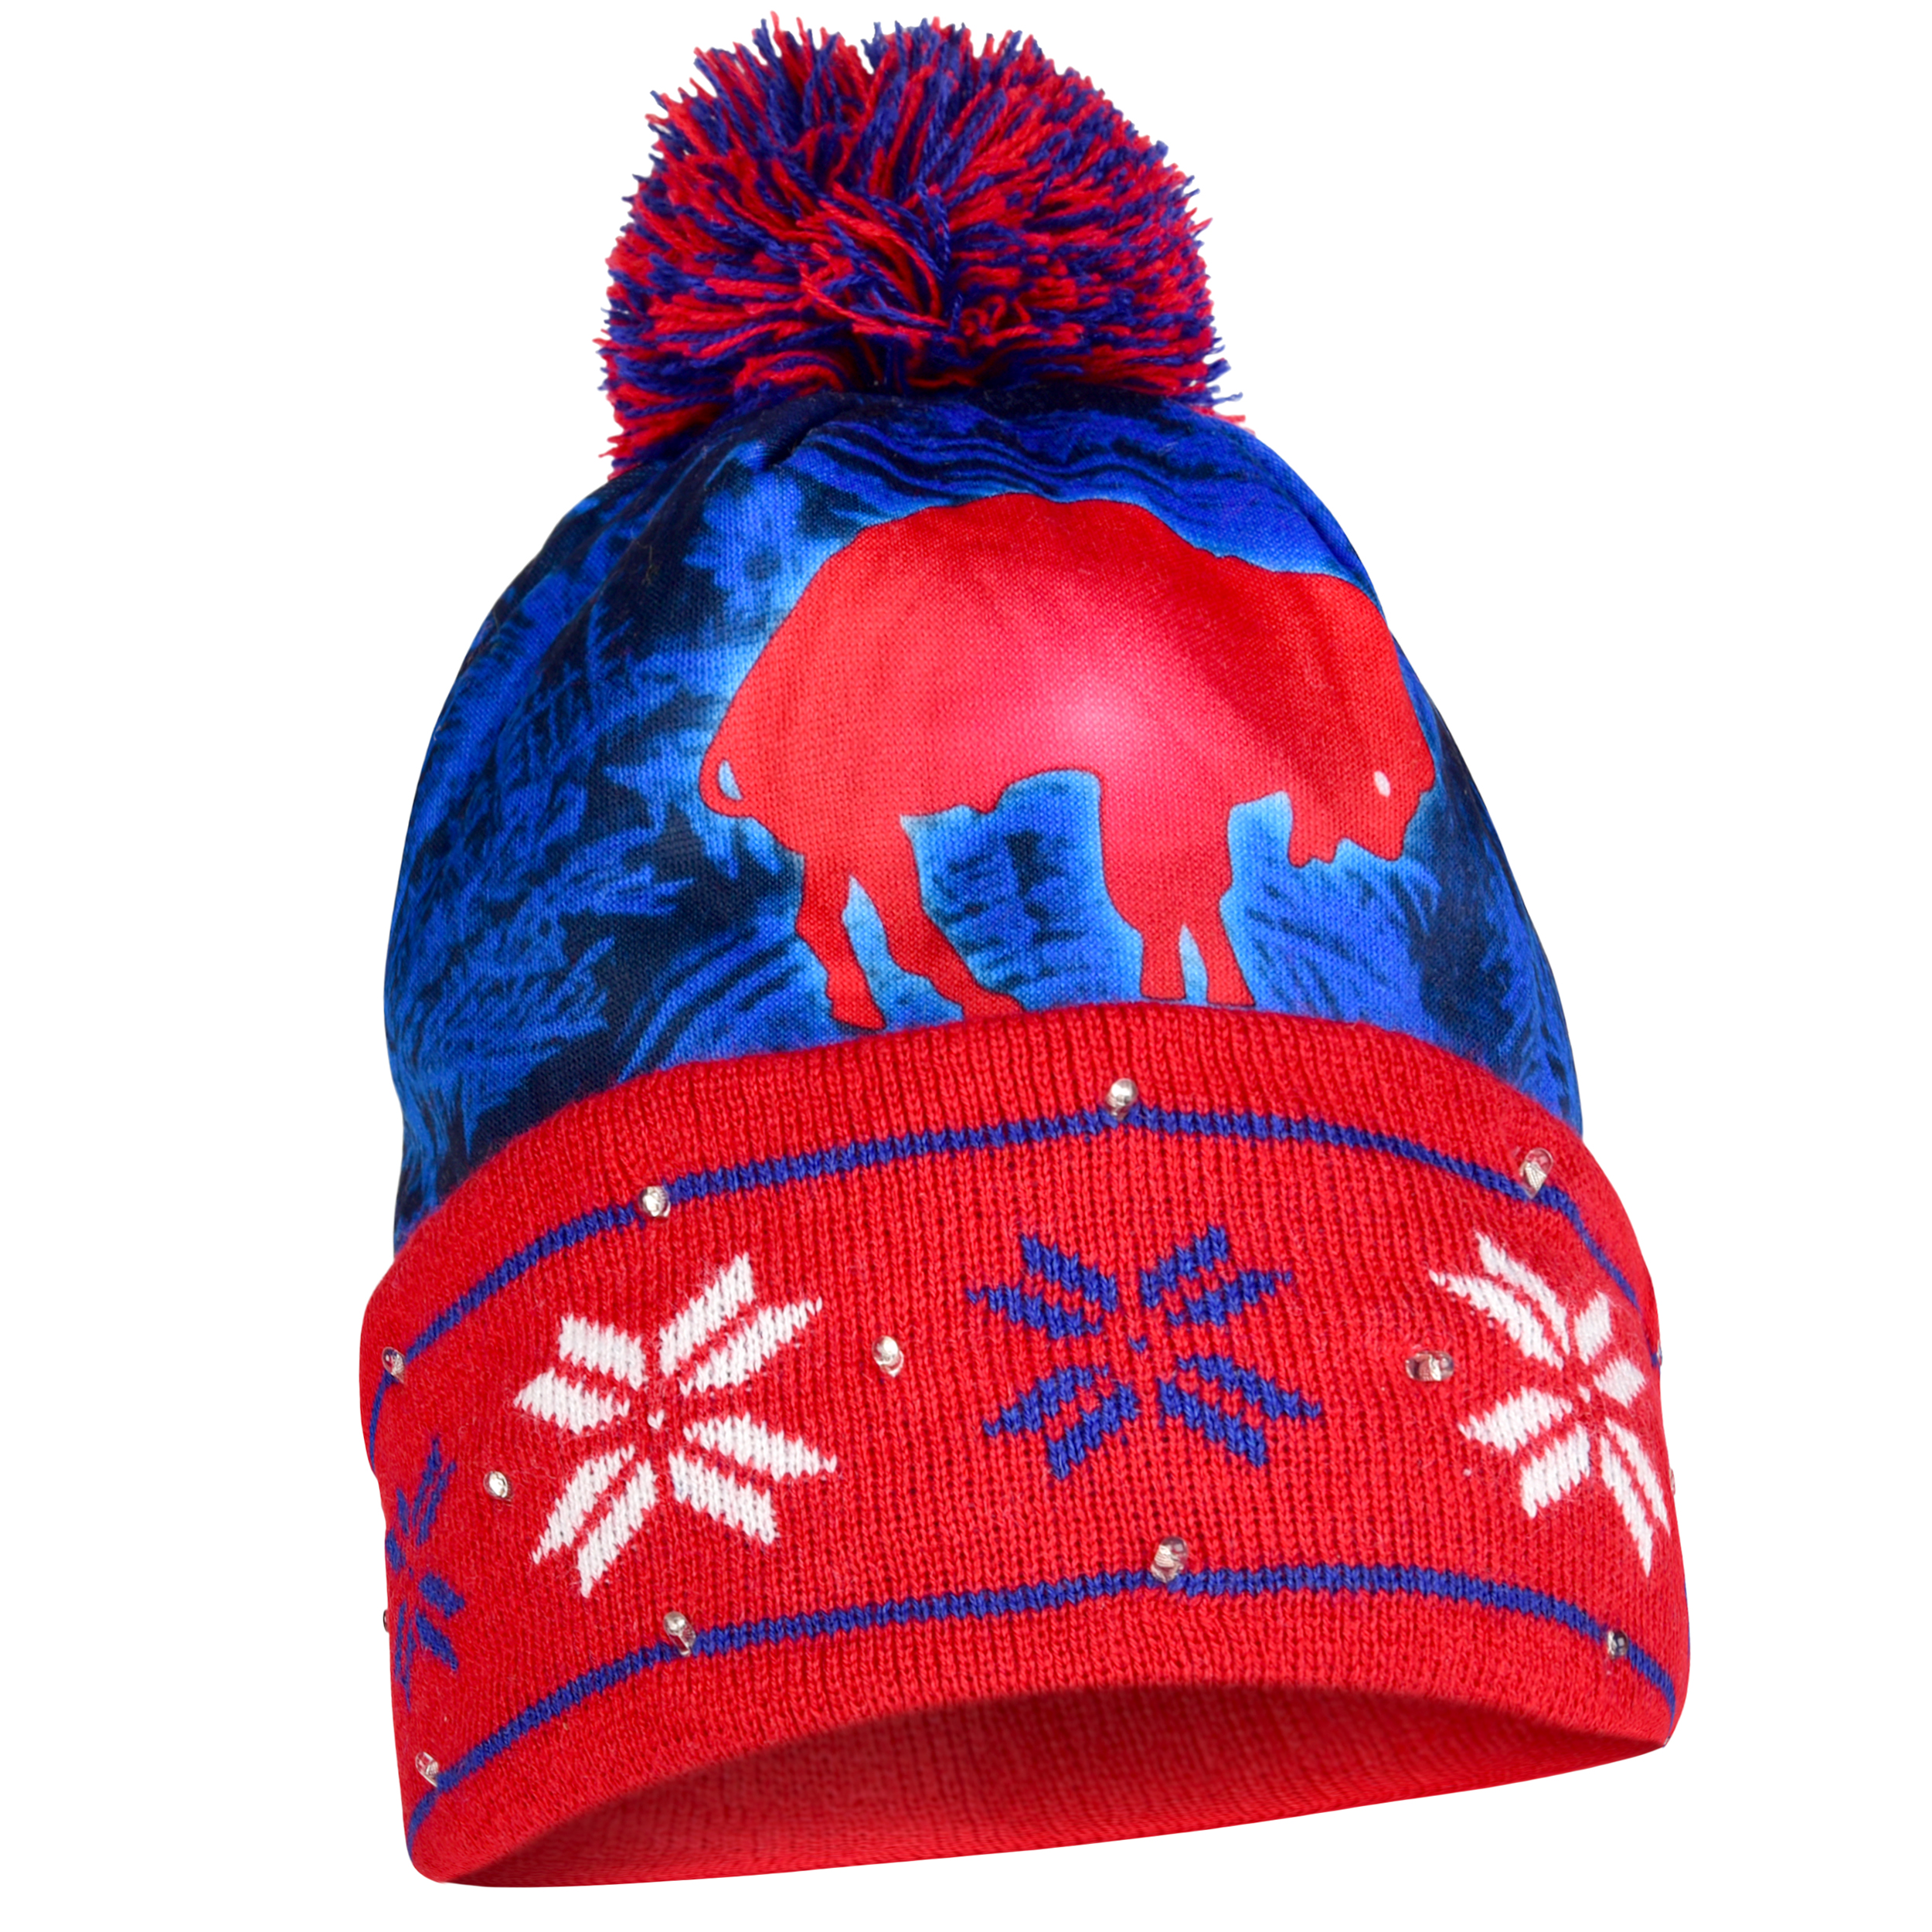 Buffalo Bills Official NFL Big Logo Beanie Stocking Stretch Knit Sock Hat by Forever Collectibles 738473 by Forever Collectibles